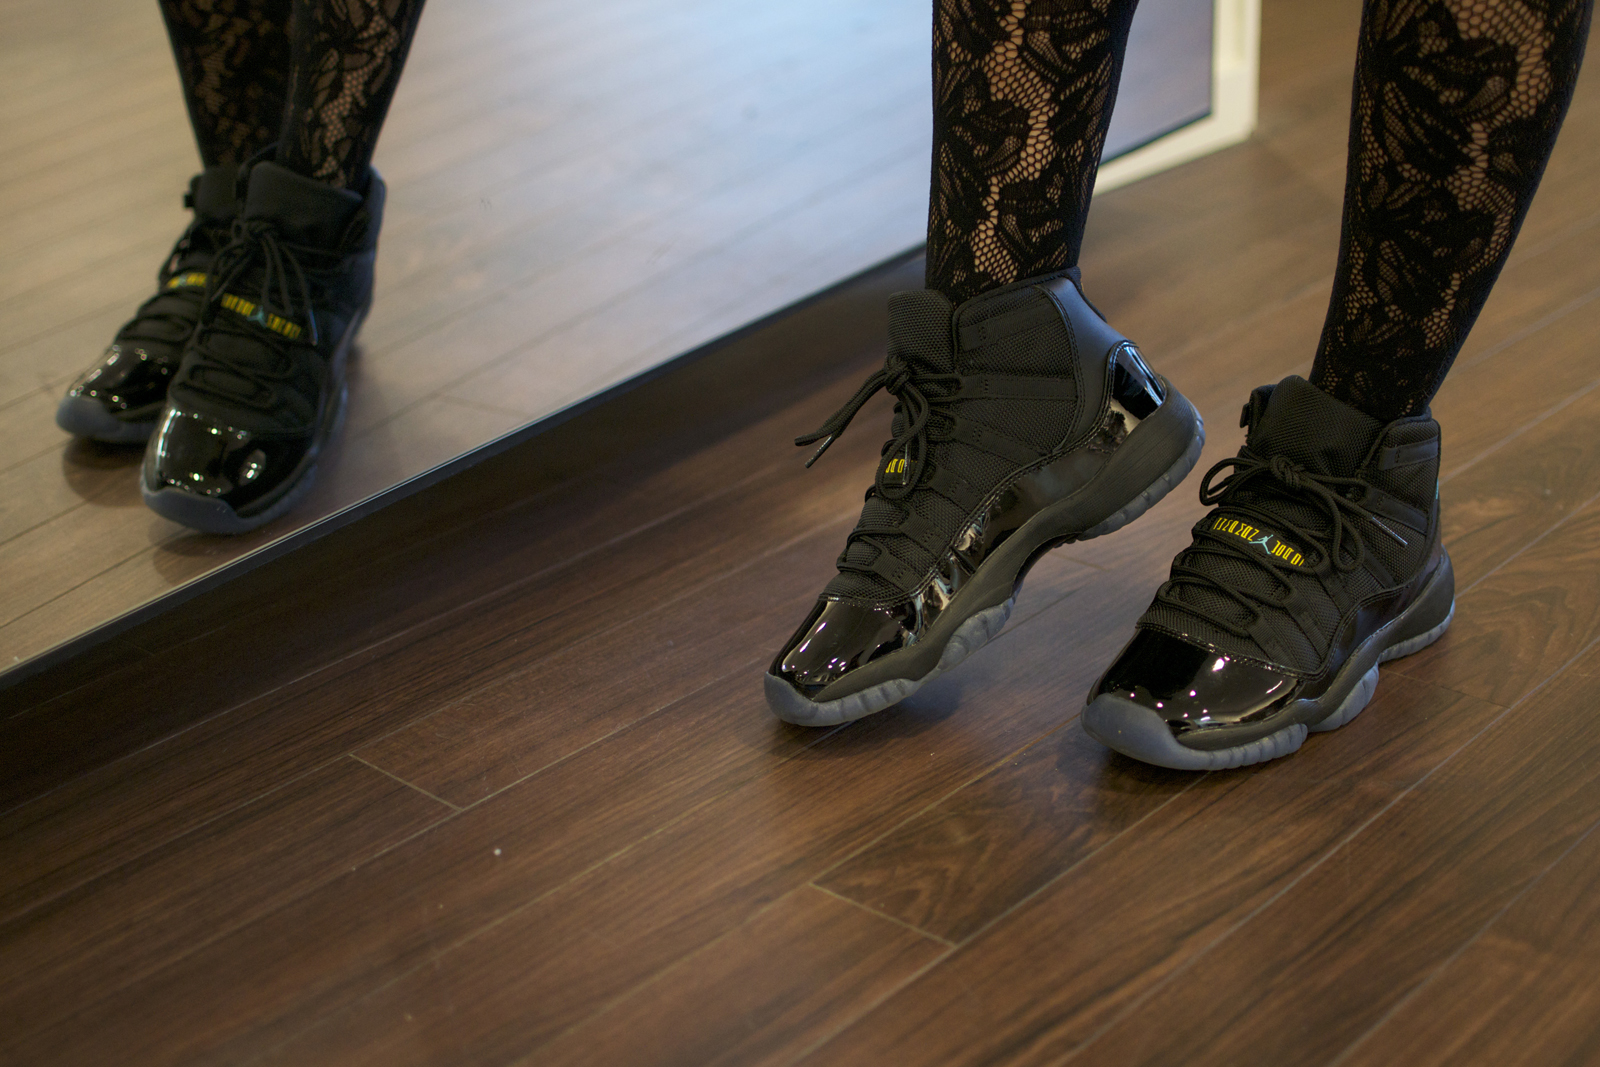 Jordan 11 Gamma Blue On Feet